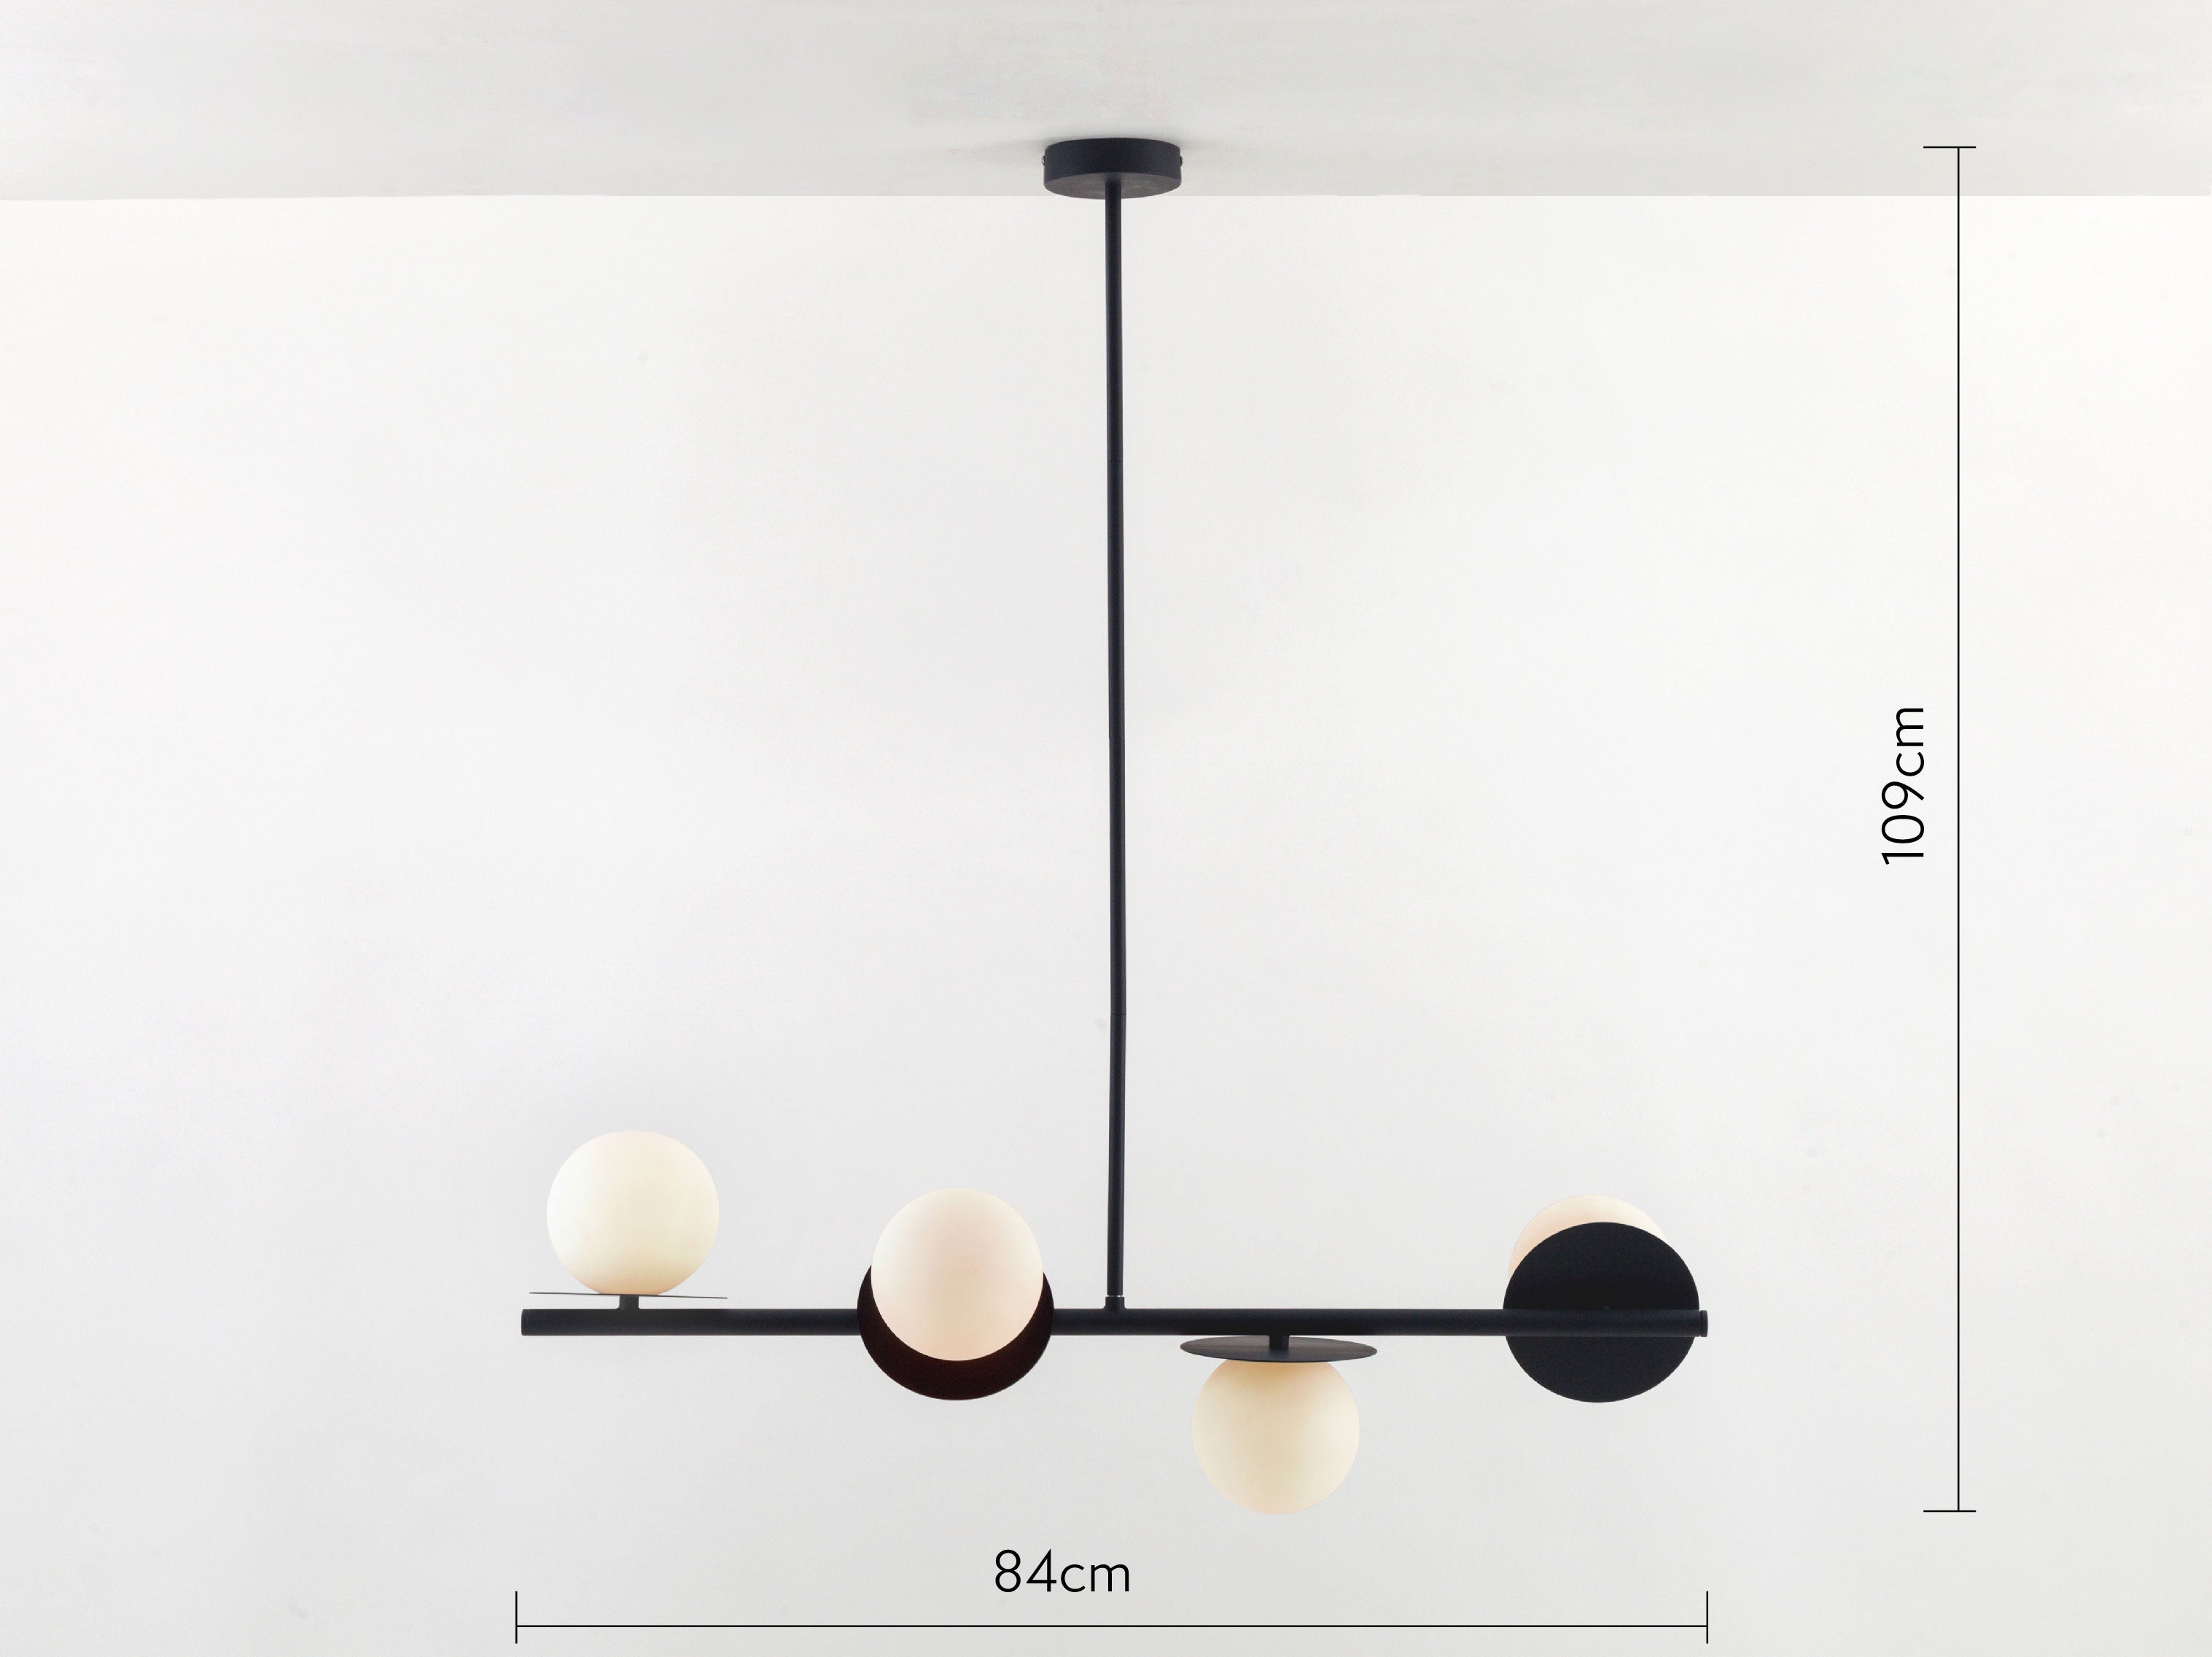 Opal disk ceiling light in charcoal with measurements